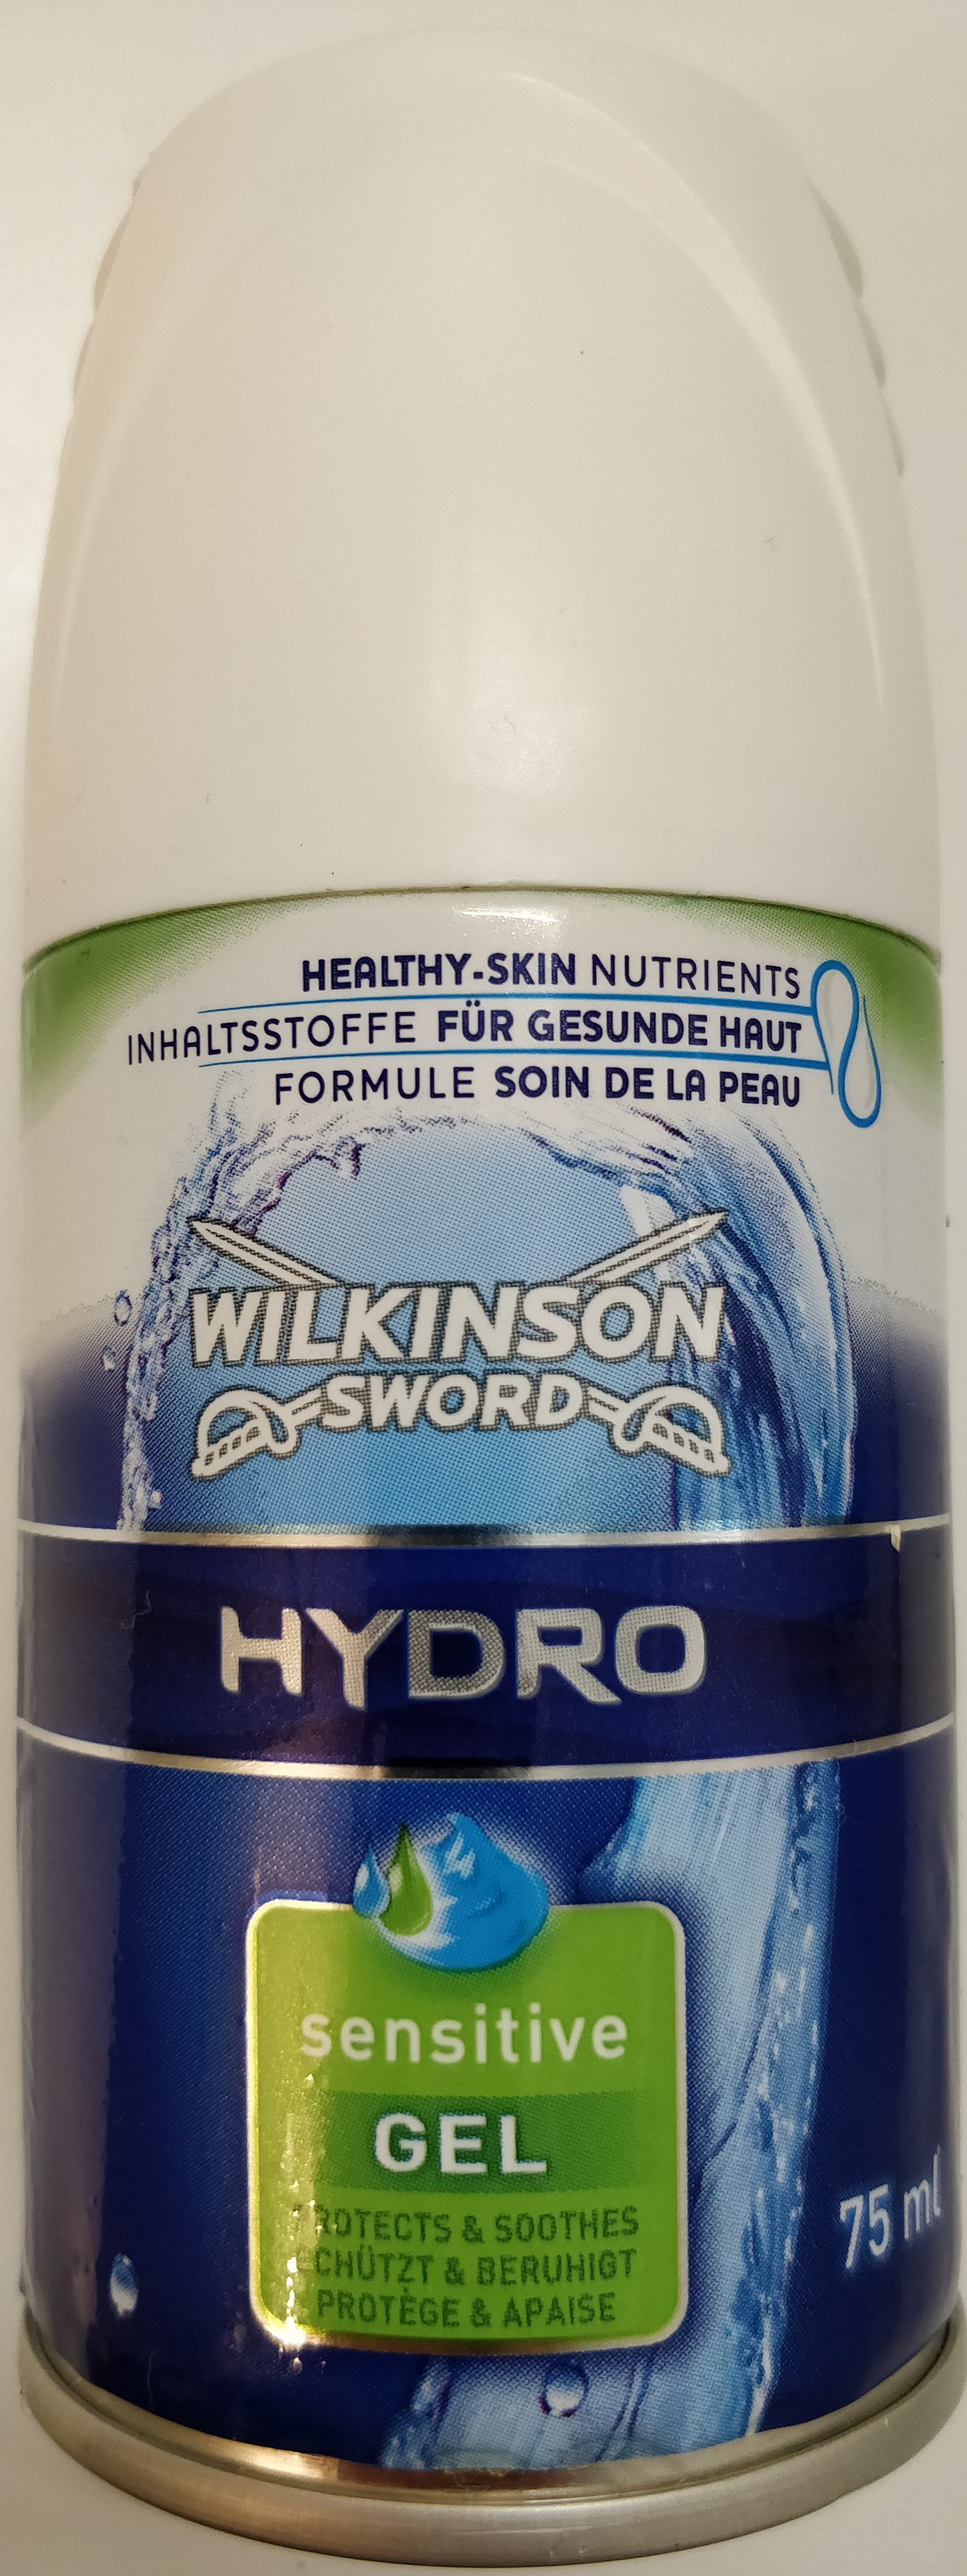 Hydro Sensitive Gel - Produit - fr